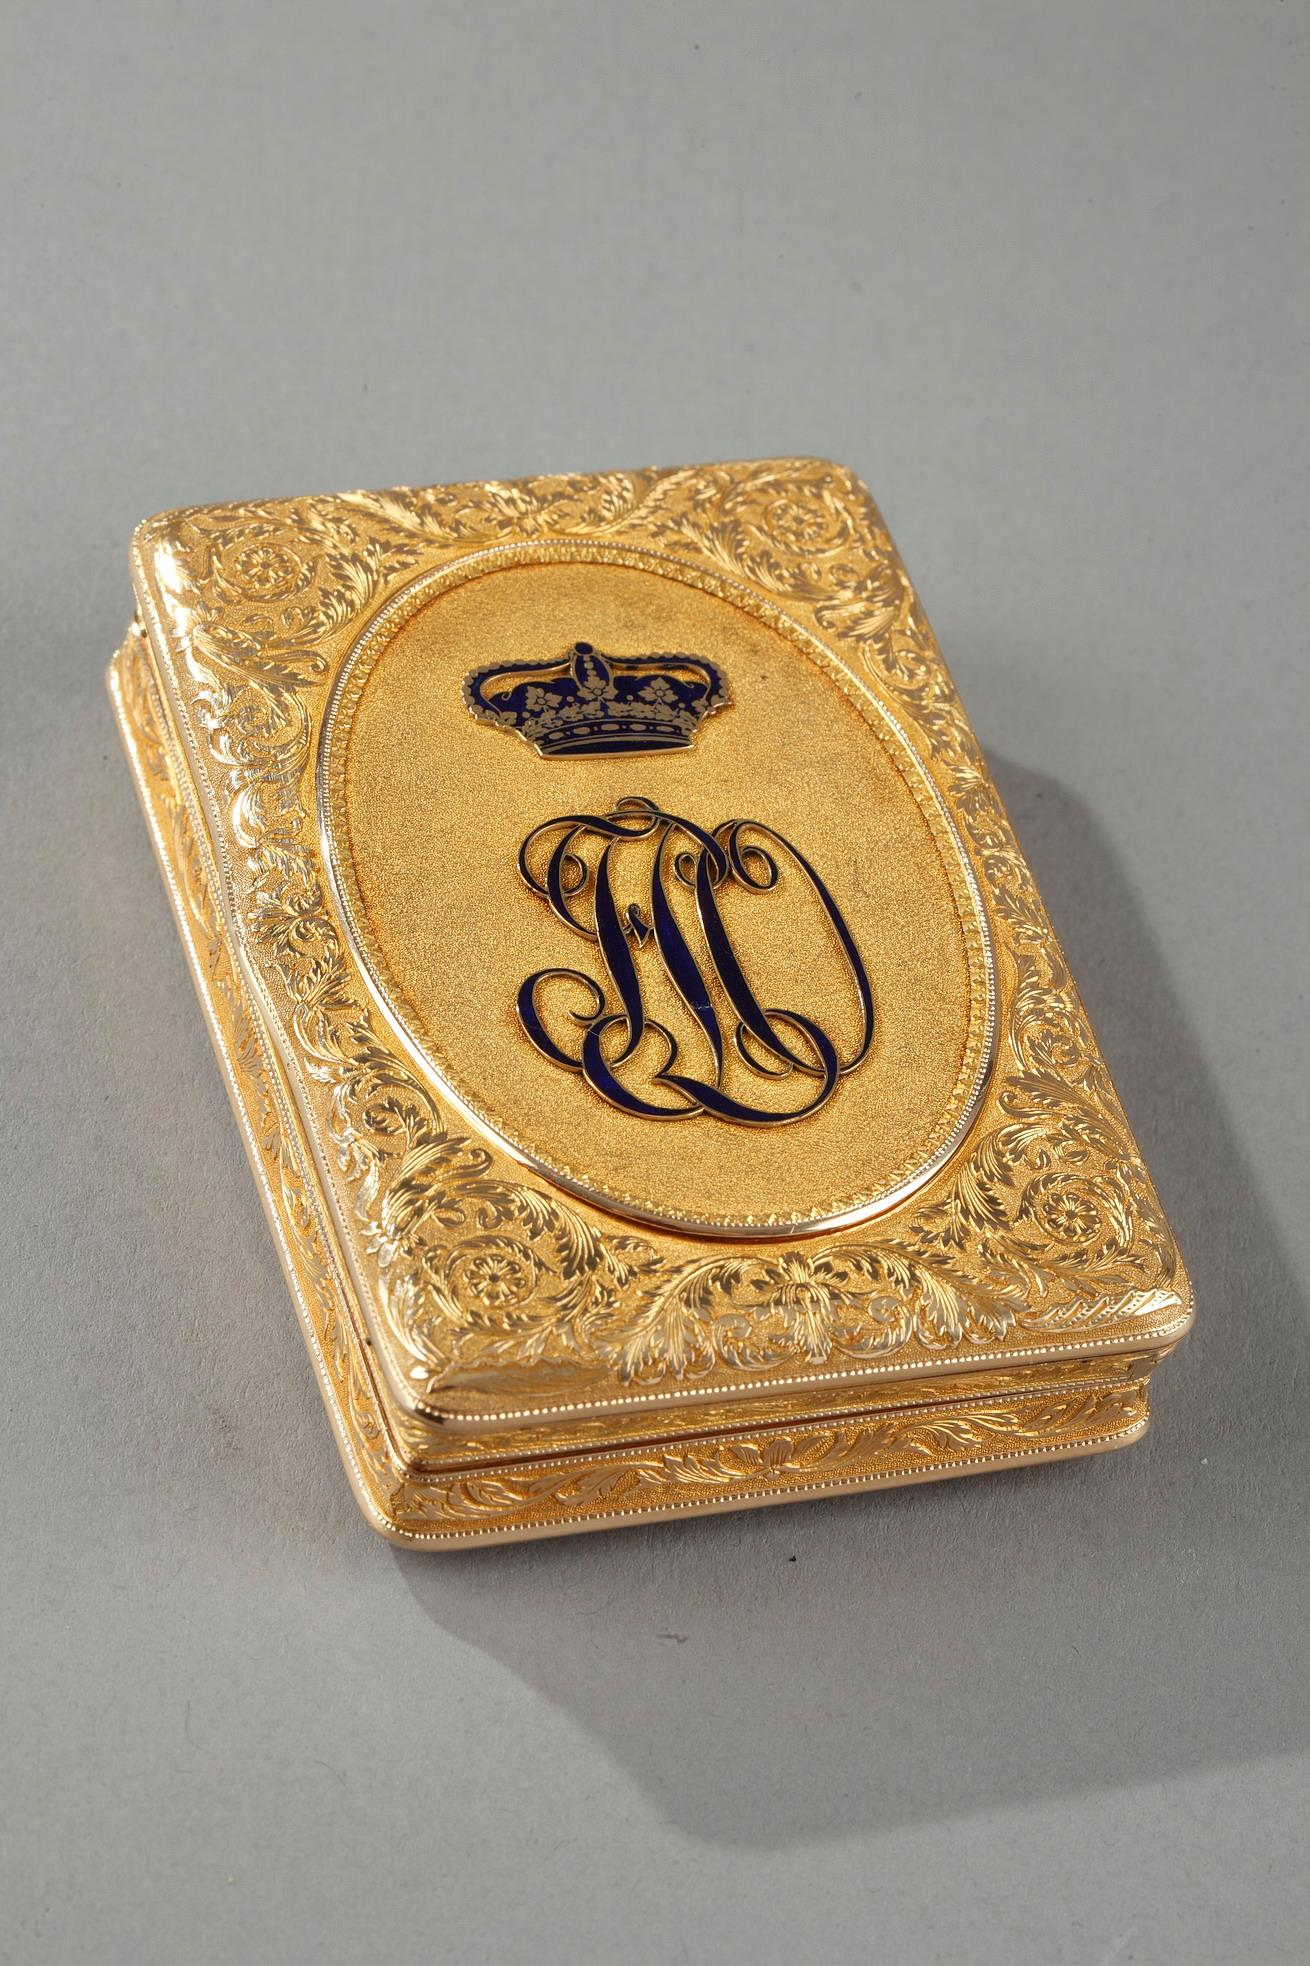 Mid-19th century Gold snuff box with monogram of Duke of Orleans, Ferdinand Philippe Louis.